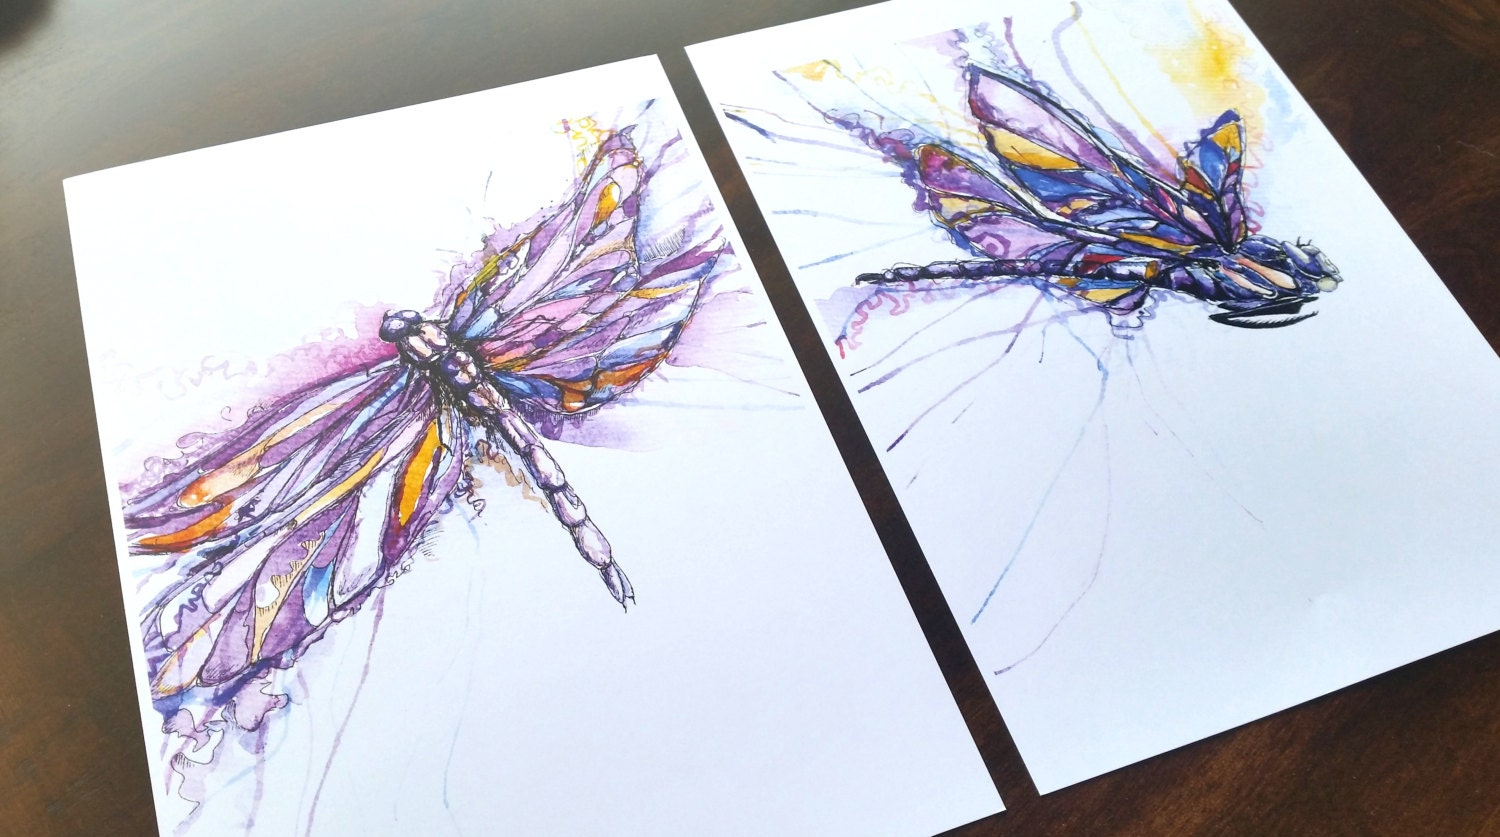 Dragonfly arts and crafts - Dragonfly Pair Sketch Watercolour Print Home Decor Wall Art Modern Art Purple